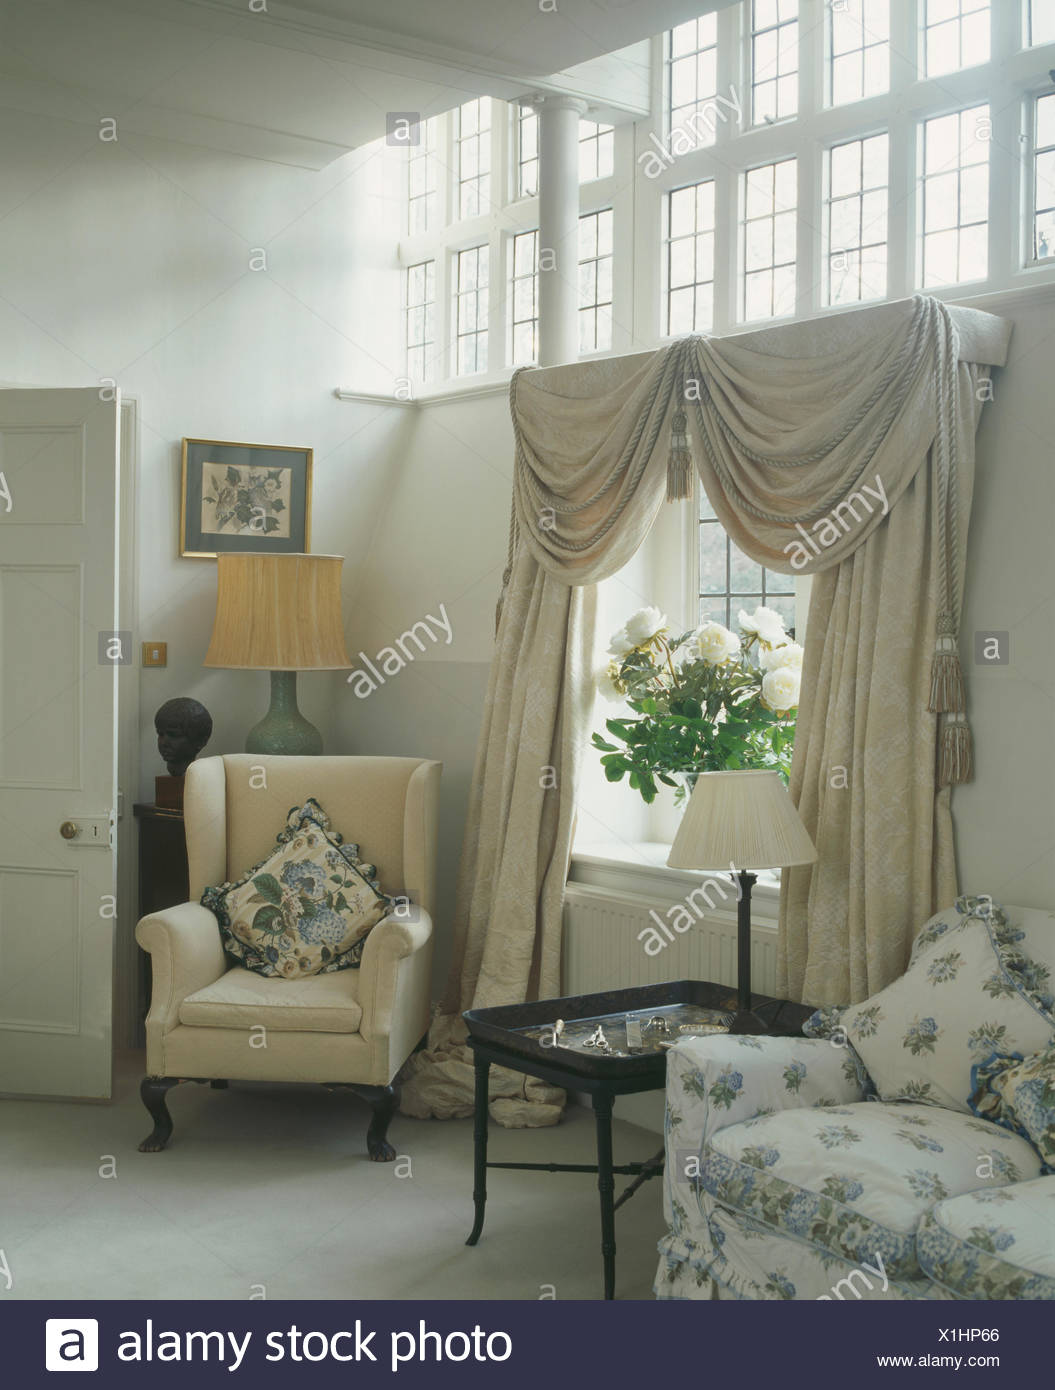 Cream swagged and tailed curtains at window in country ...